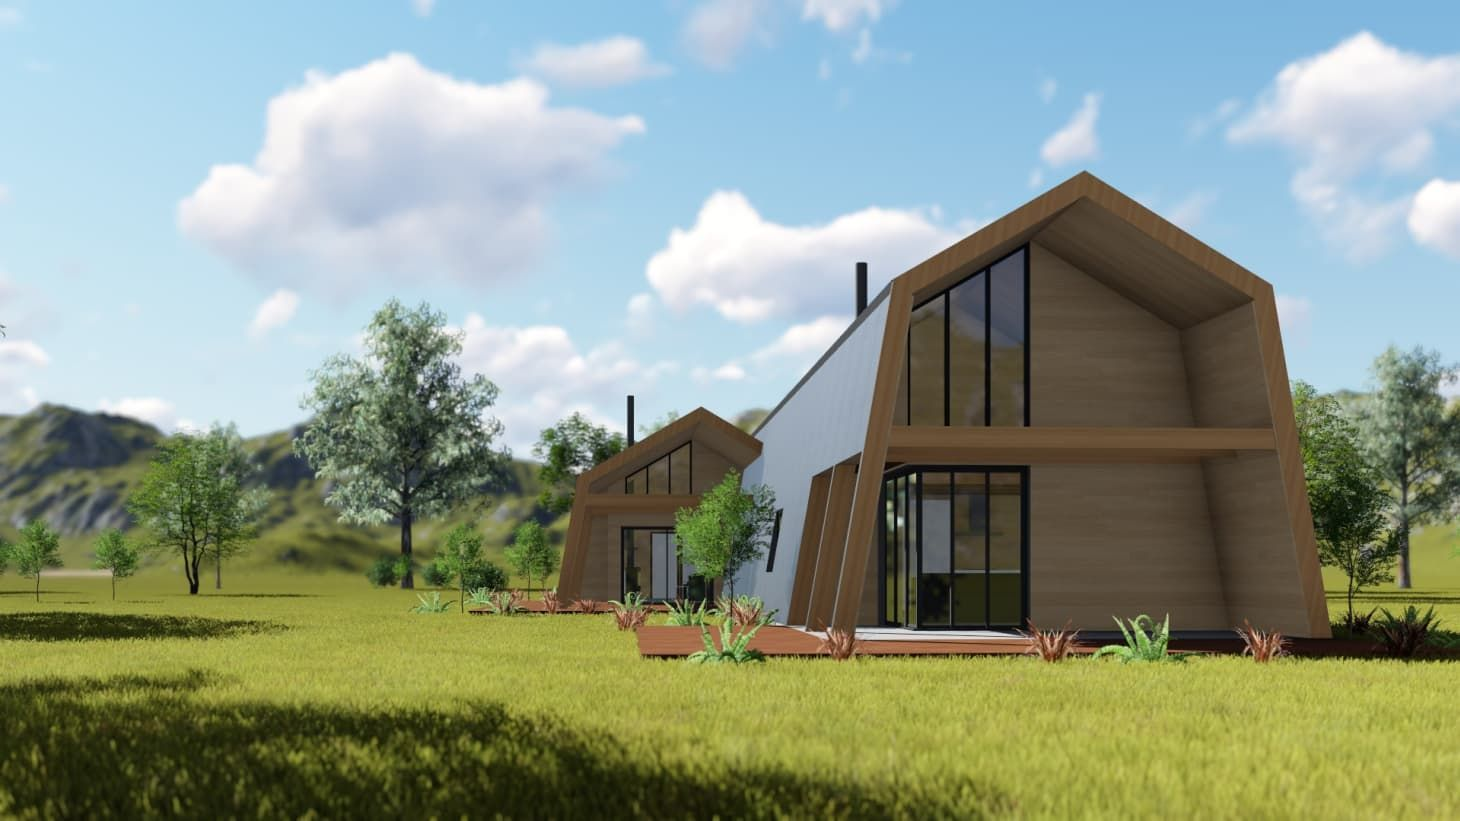 This Eco-Friendly DIY House Kit Starts at $200,000 | Kit ...